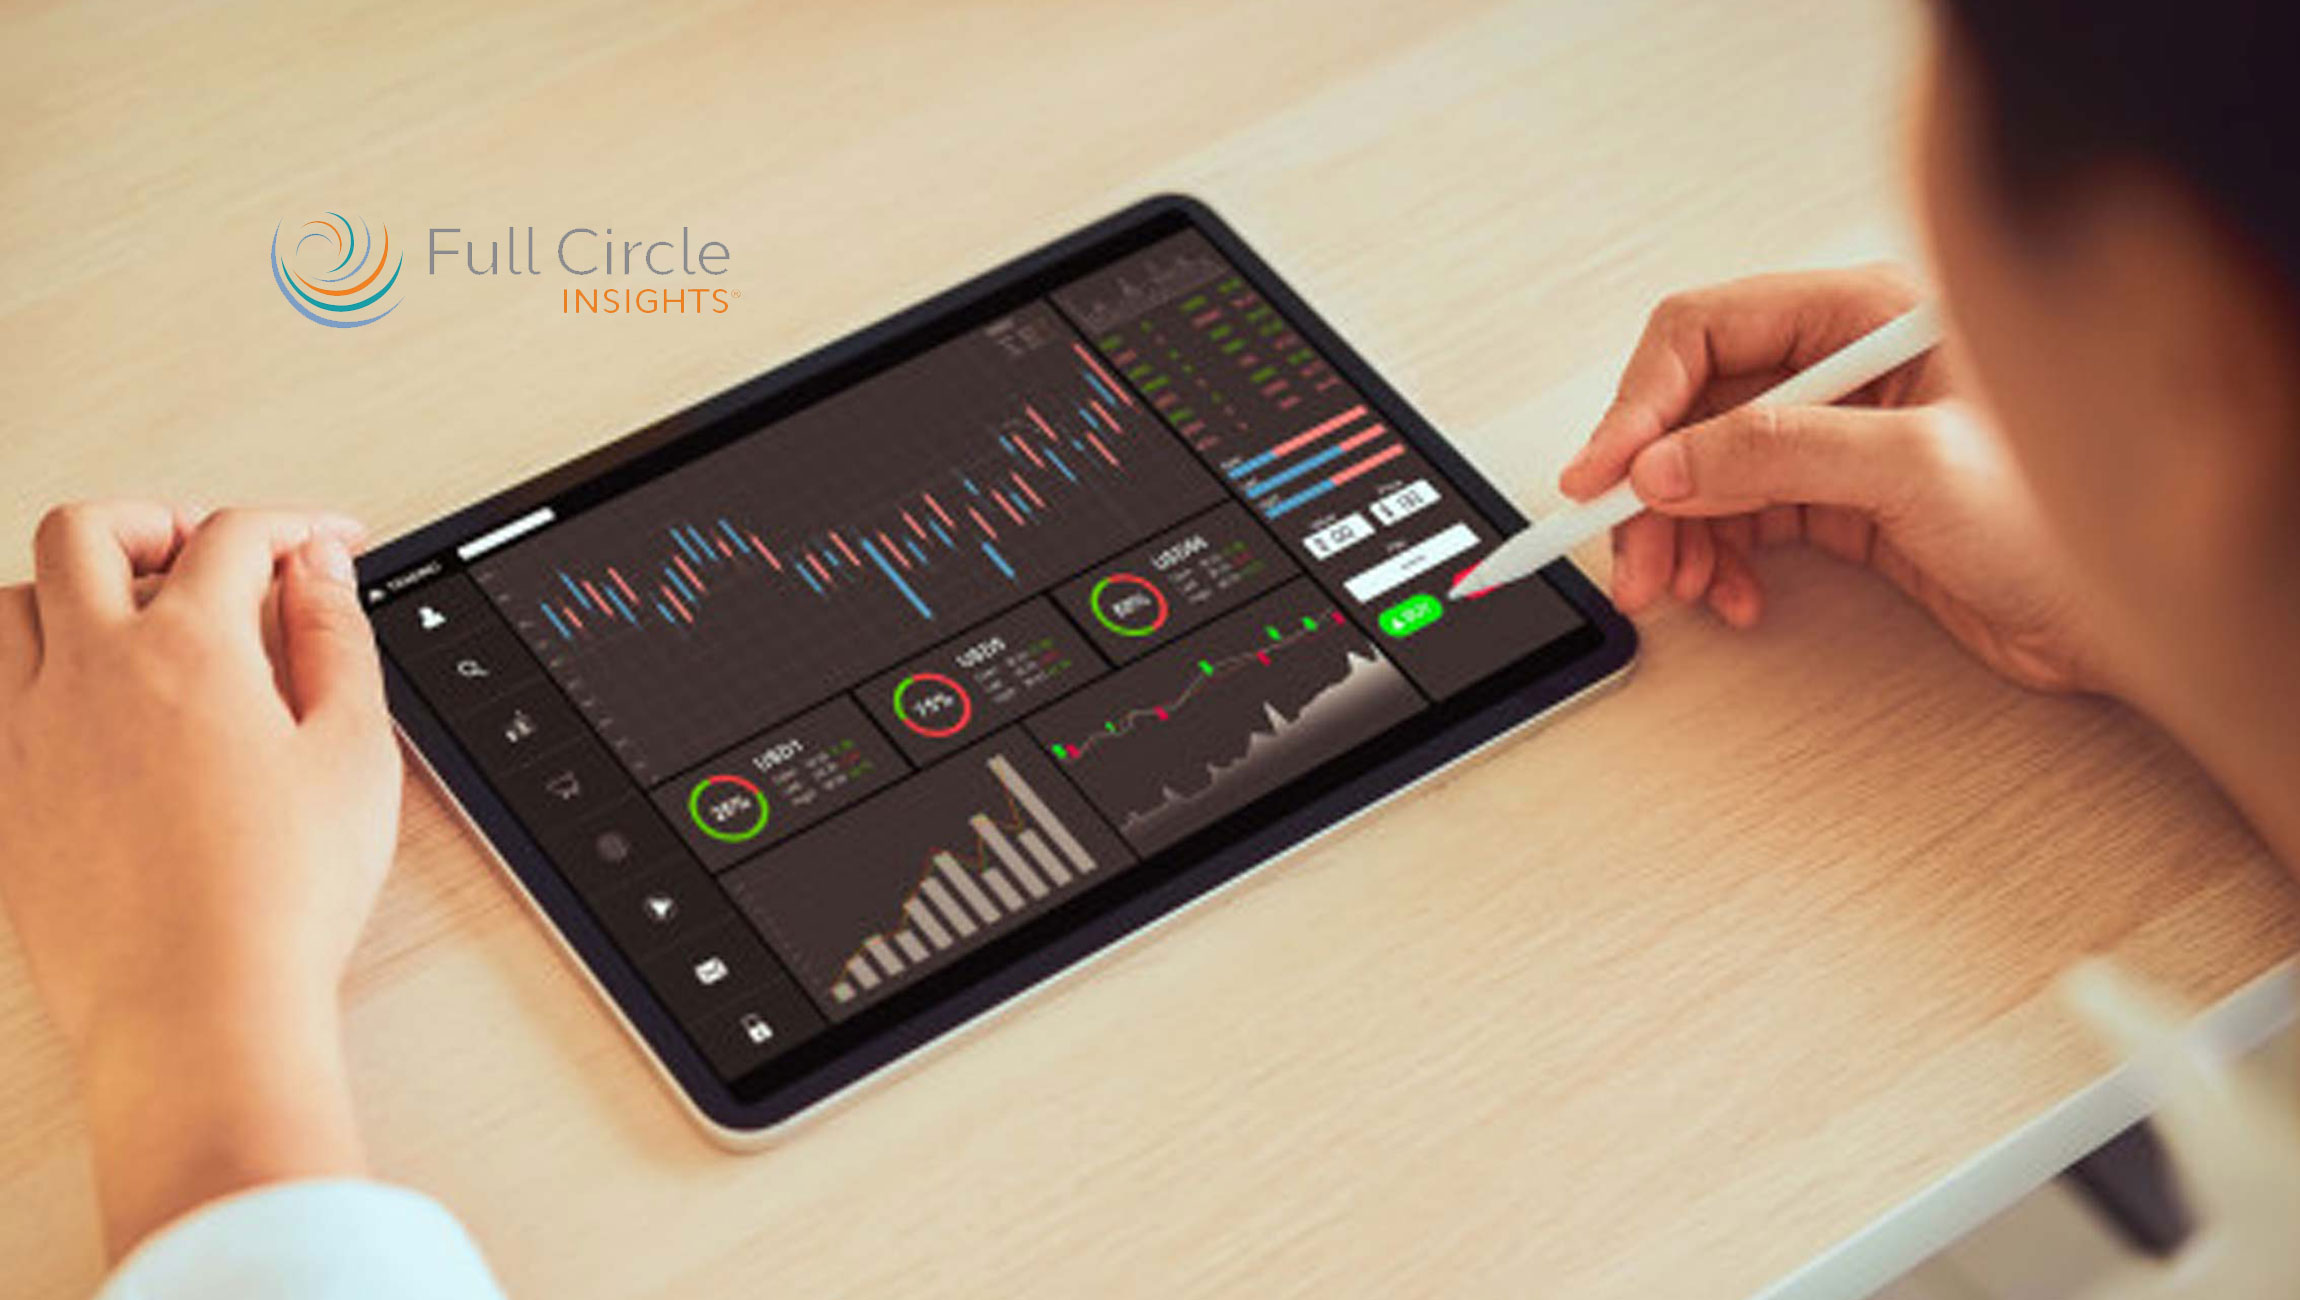 Full Circle Insights Rolls Out New Product Dashboards to Support Digital Marketing